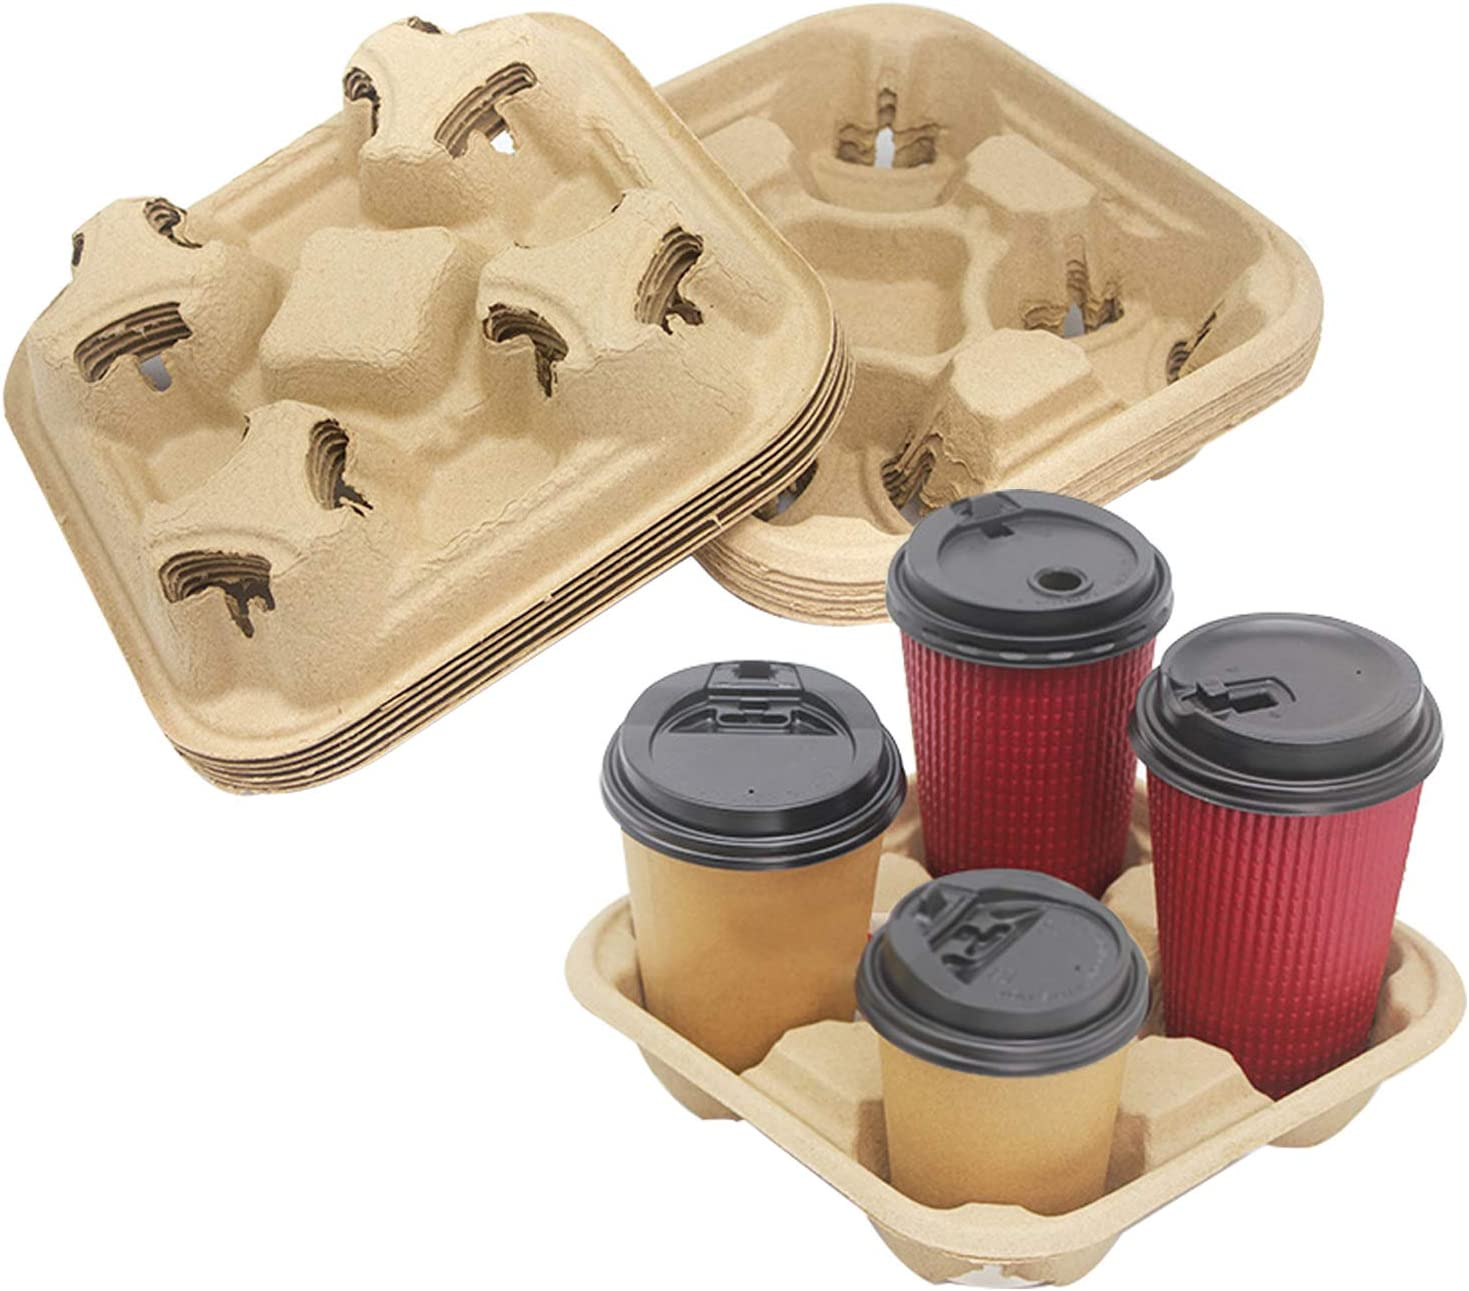 25 Pack 4 Cup Disposable Coffee Tray, Stackable Cup Holder for Hot and Cold Drinks, Suitable for Food Delivery, Takeout, and To Go Services